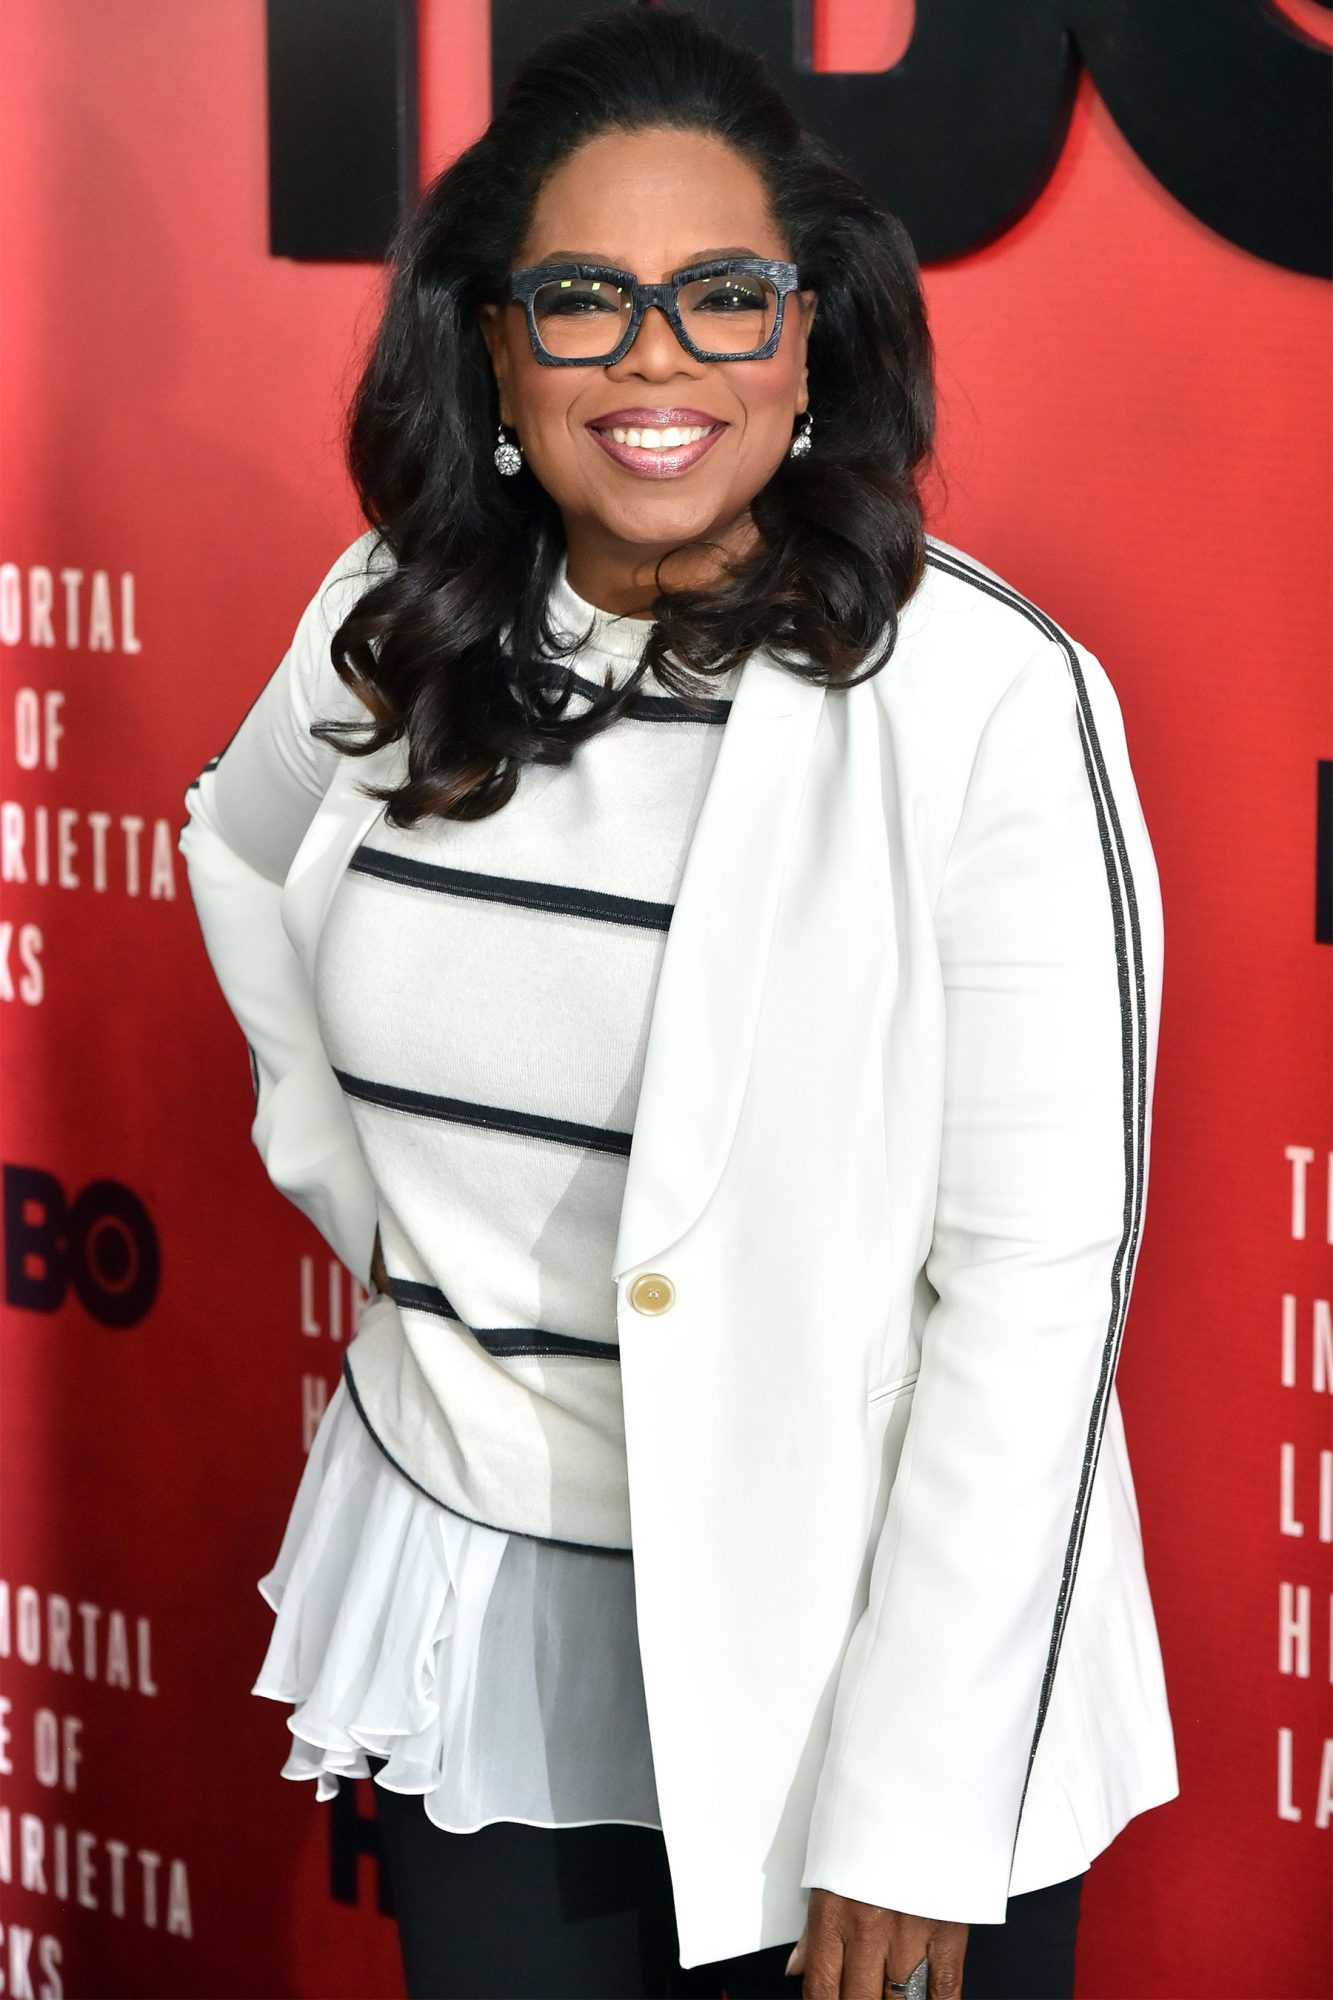 'The Immortal Life of Henrietta Lacks' film screening, Arrivals, New York, USA - 18 Apr 2017